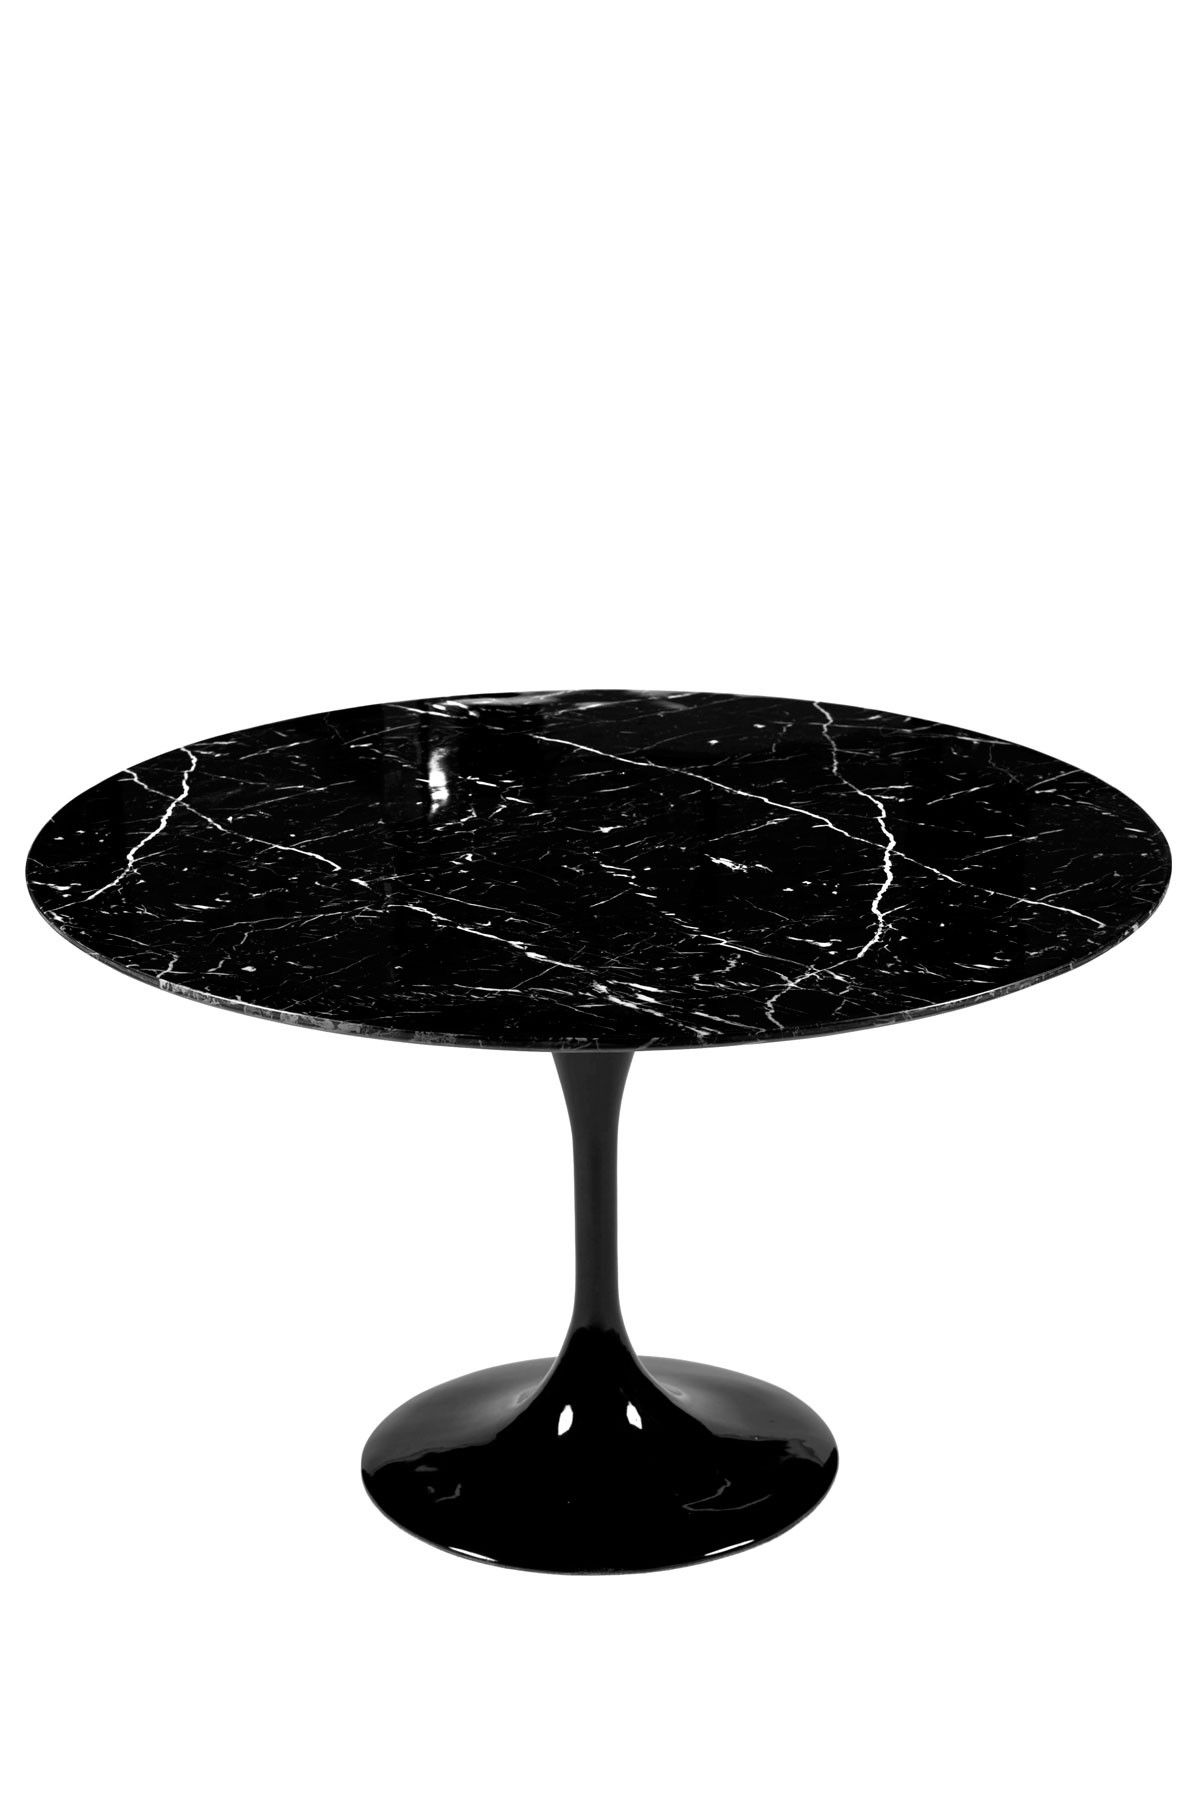 Round Marble Top Dining Table Tulip Marble Top Round Table Black Pinterest Marble